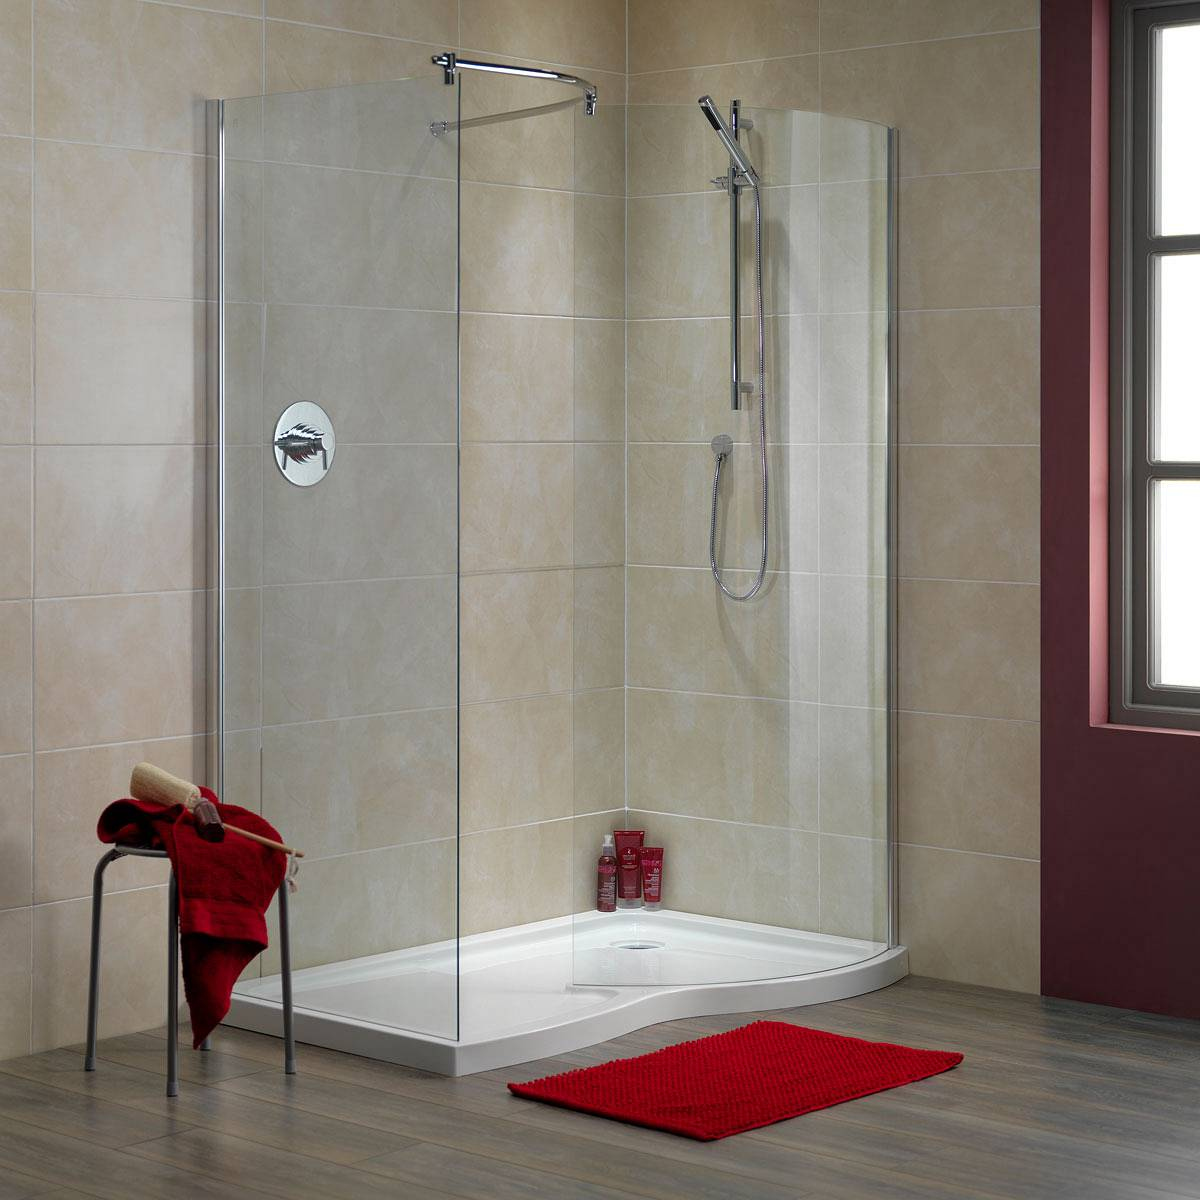 walk in shower or wet room consider the benefits - Bathroom Design Ideas Nz